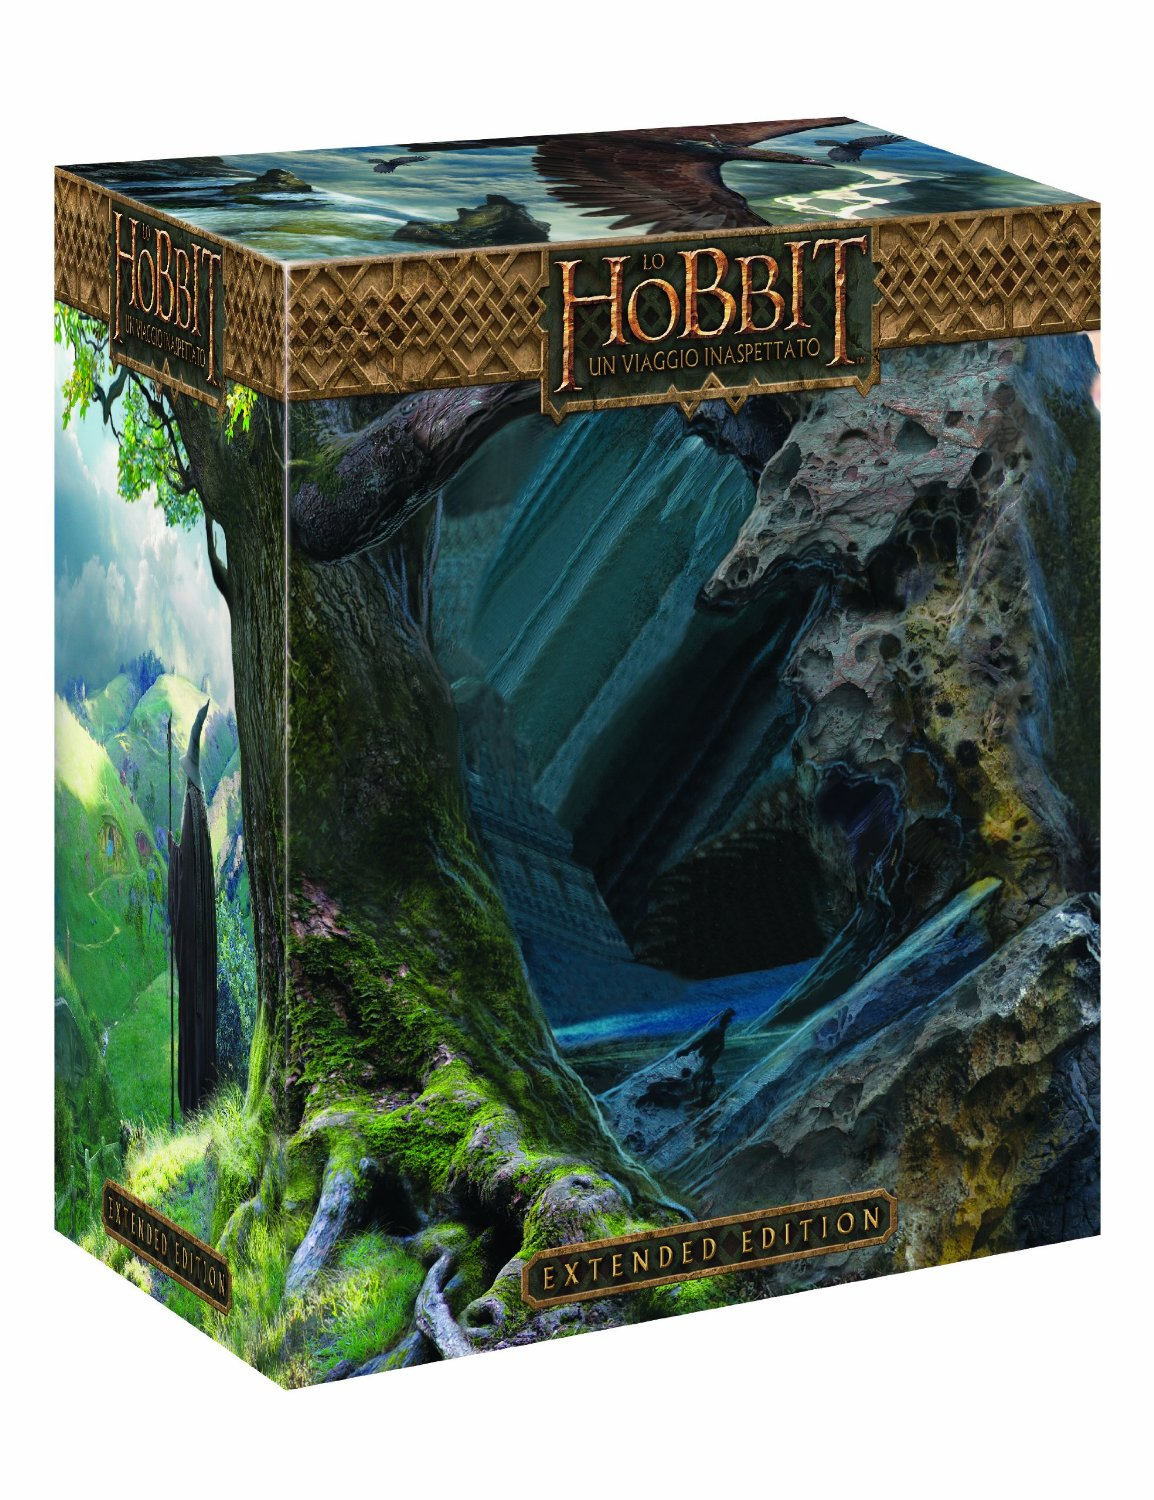 hobbit viaggio inaspettato extended edition limited amazon